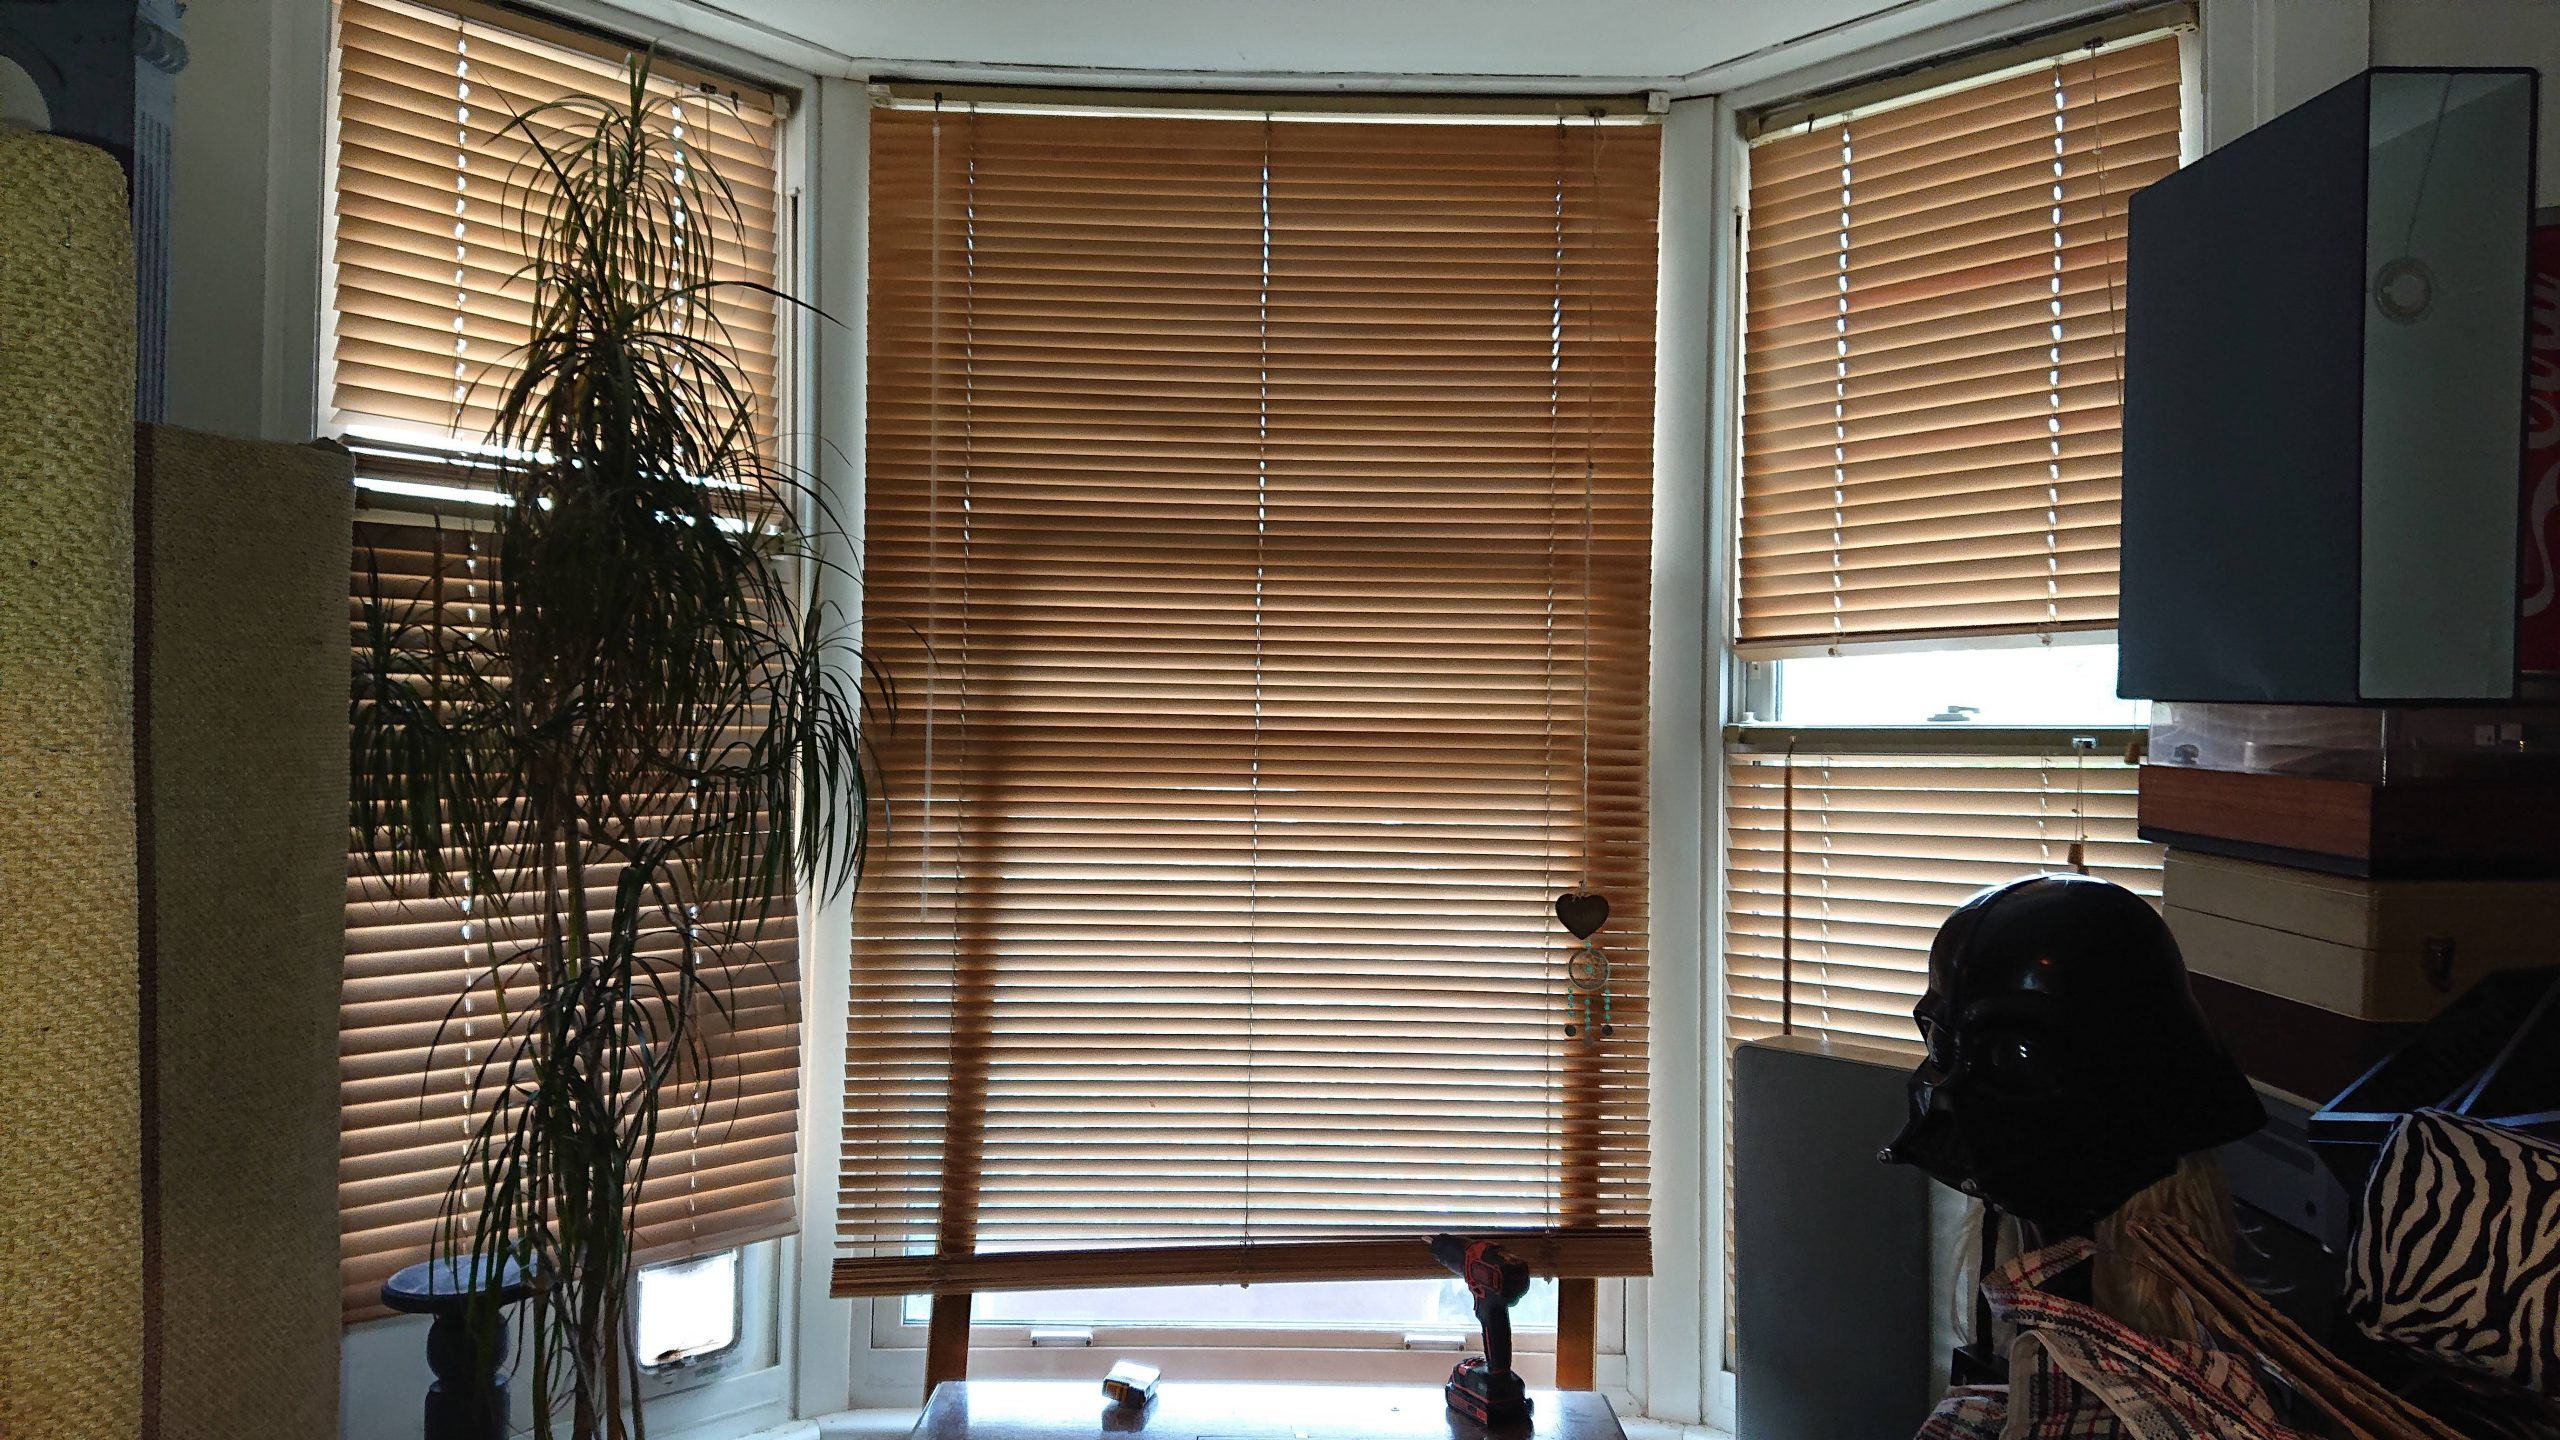 Venitian Blinds image scaled